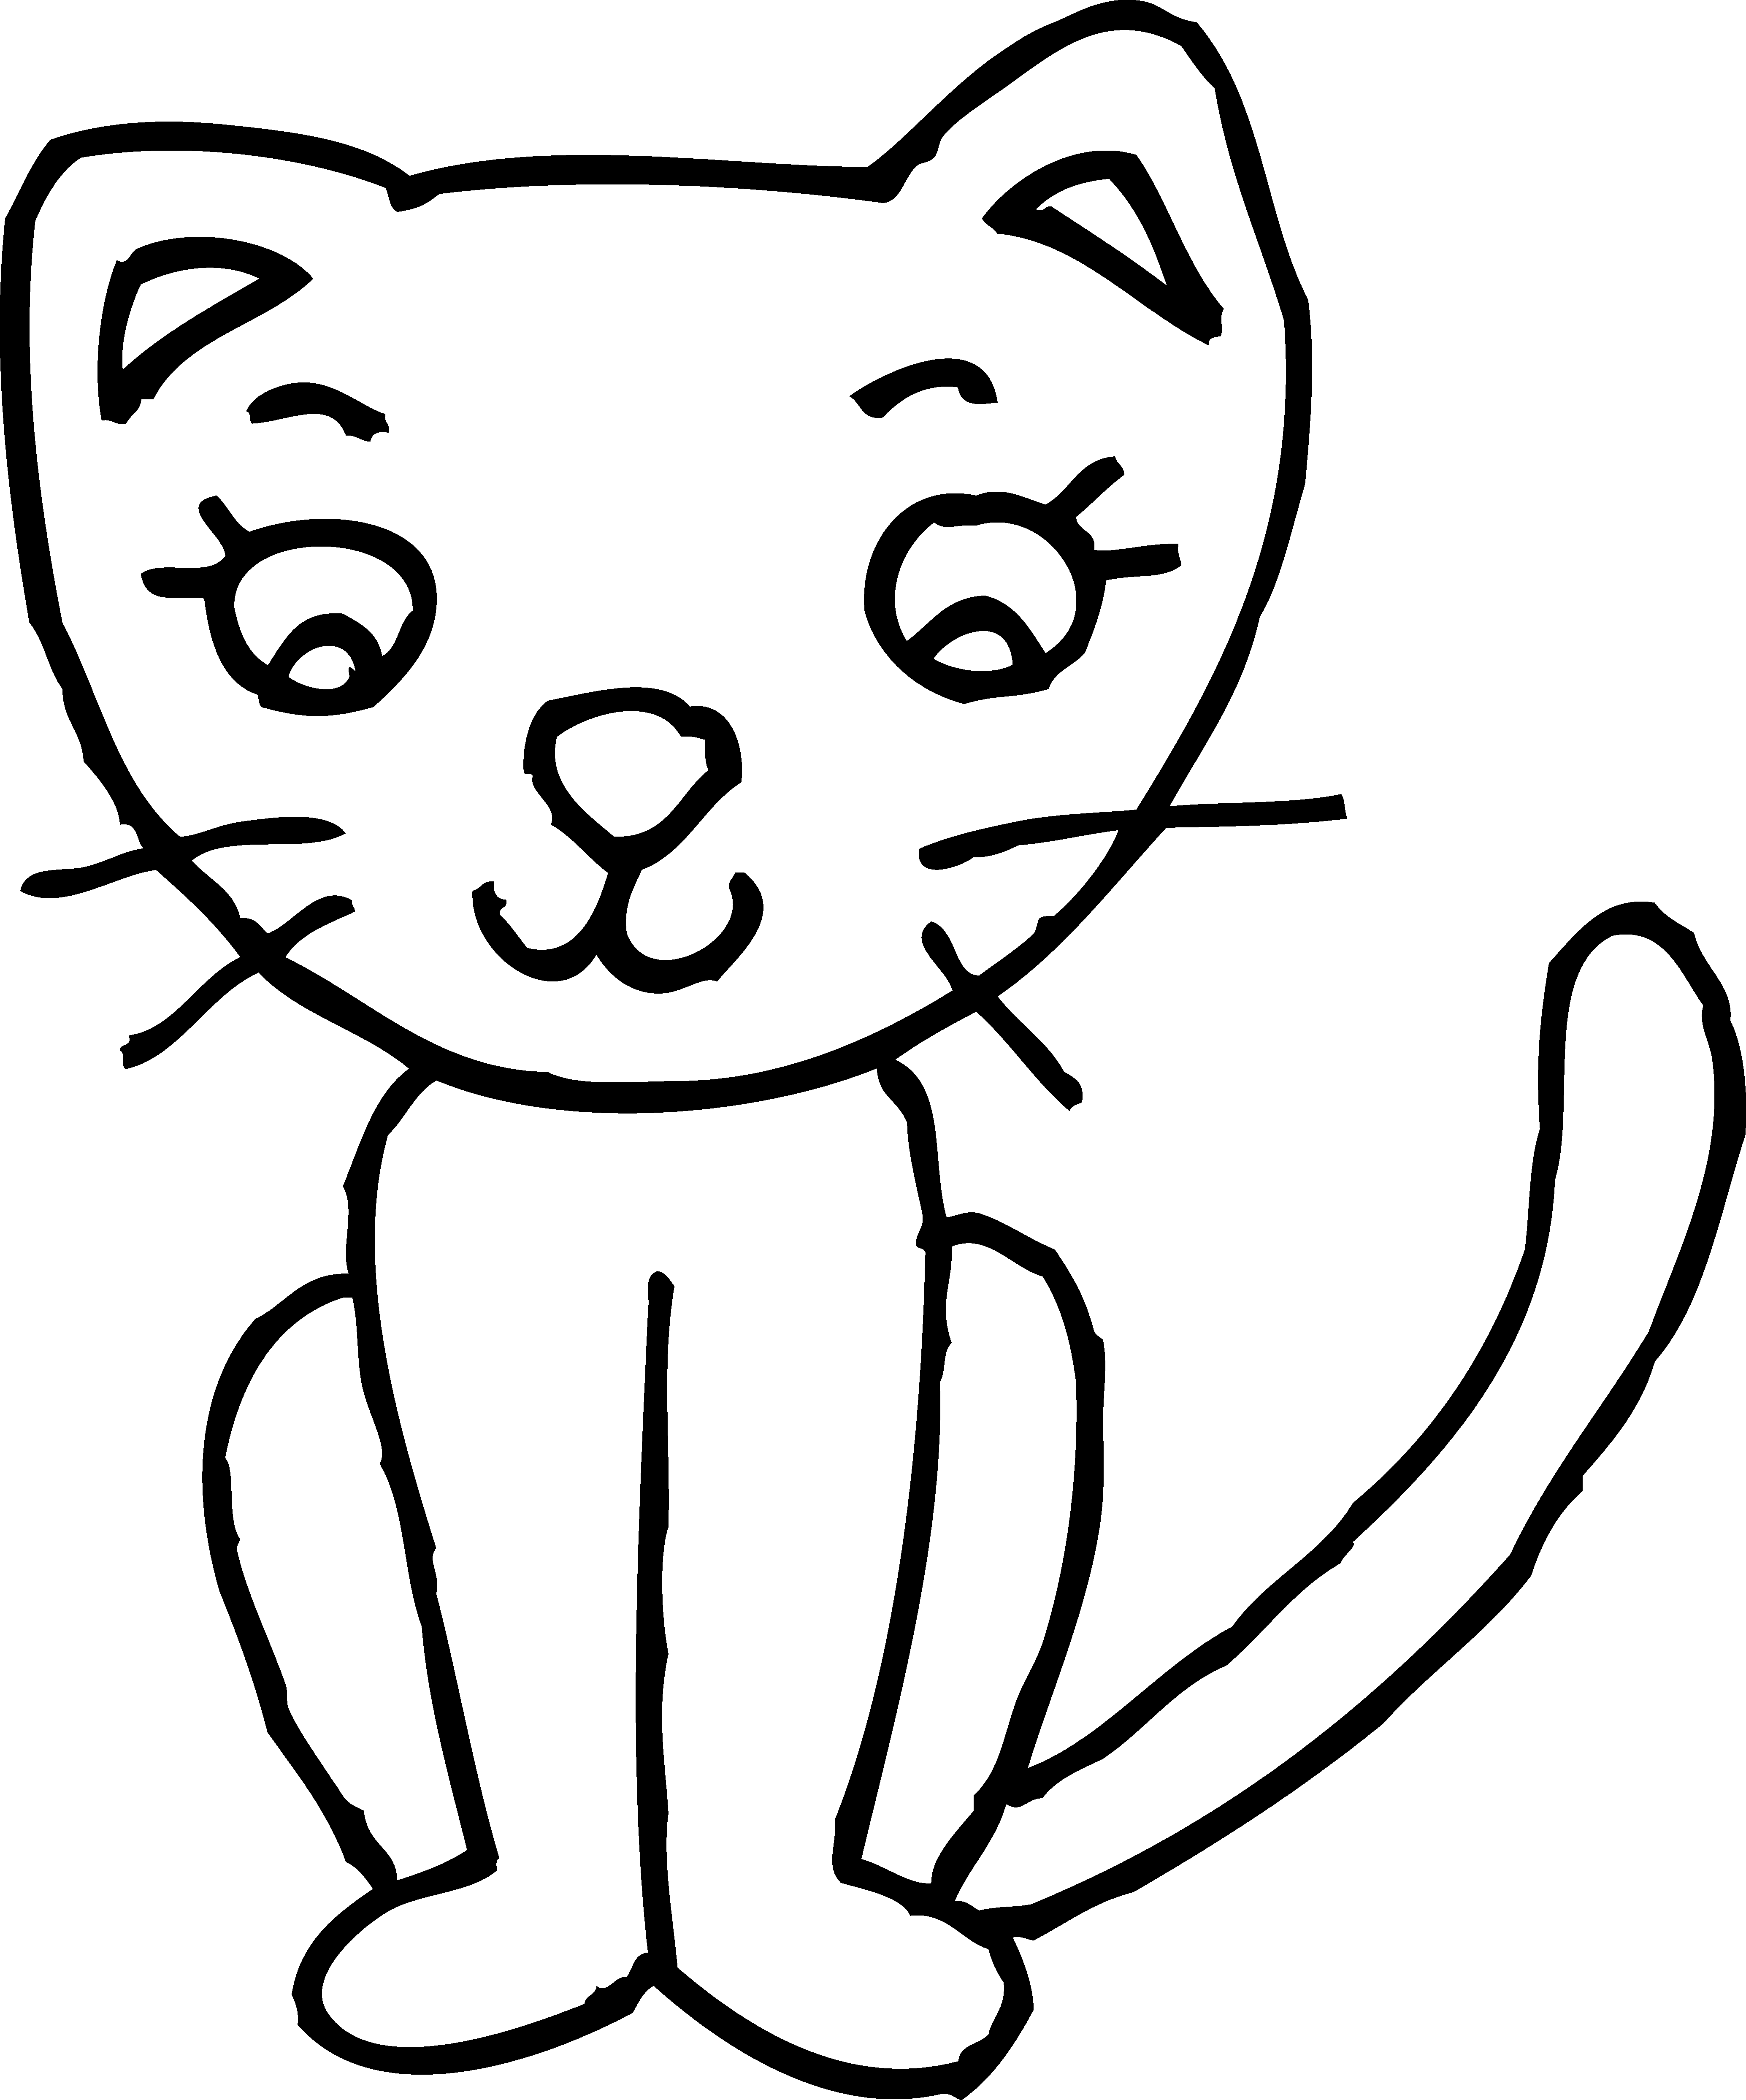 Cat clipart black and white simple image royalty free library Cat Clipart Black And White | Letters Format image royalty free library